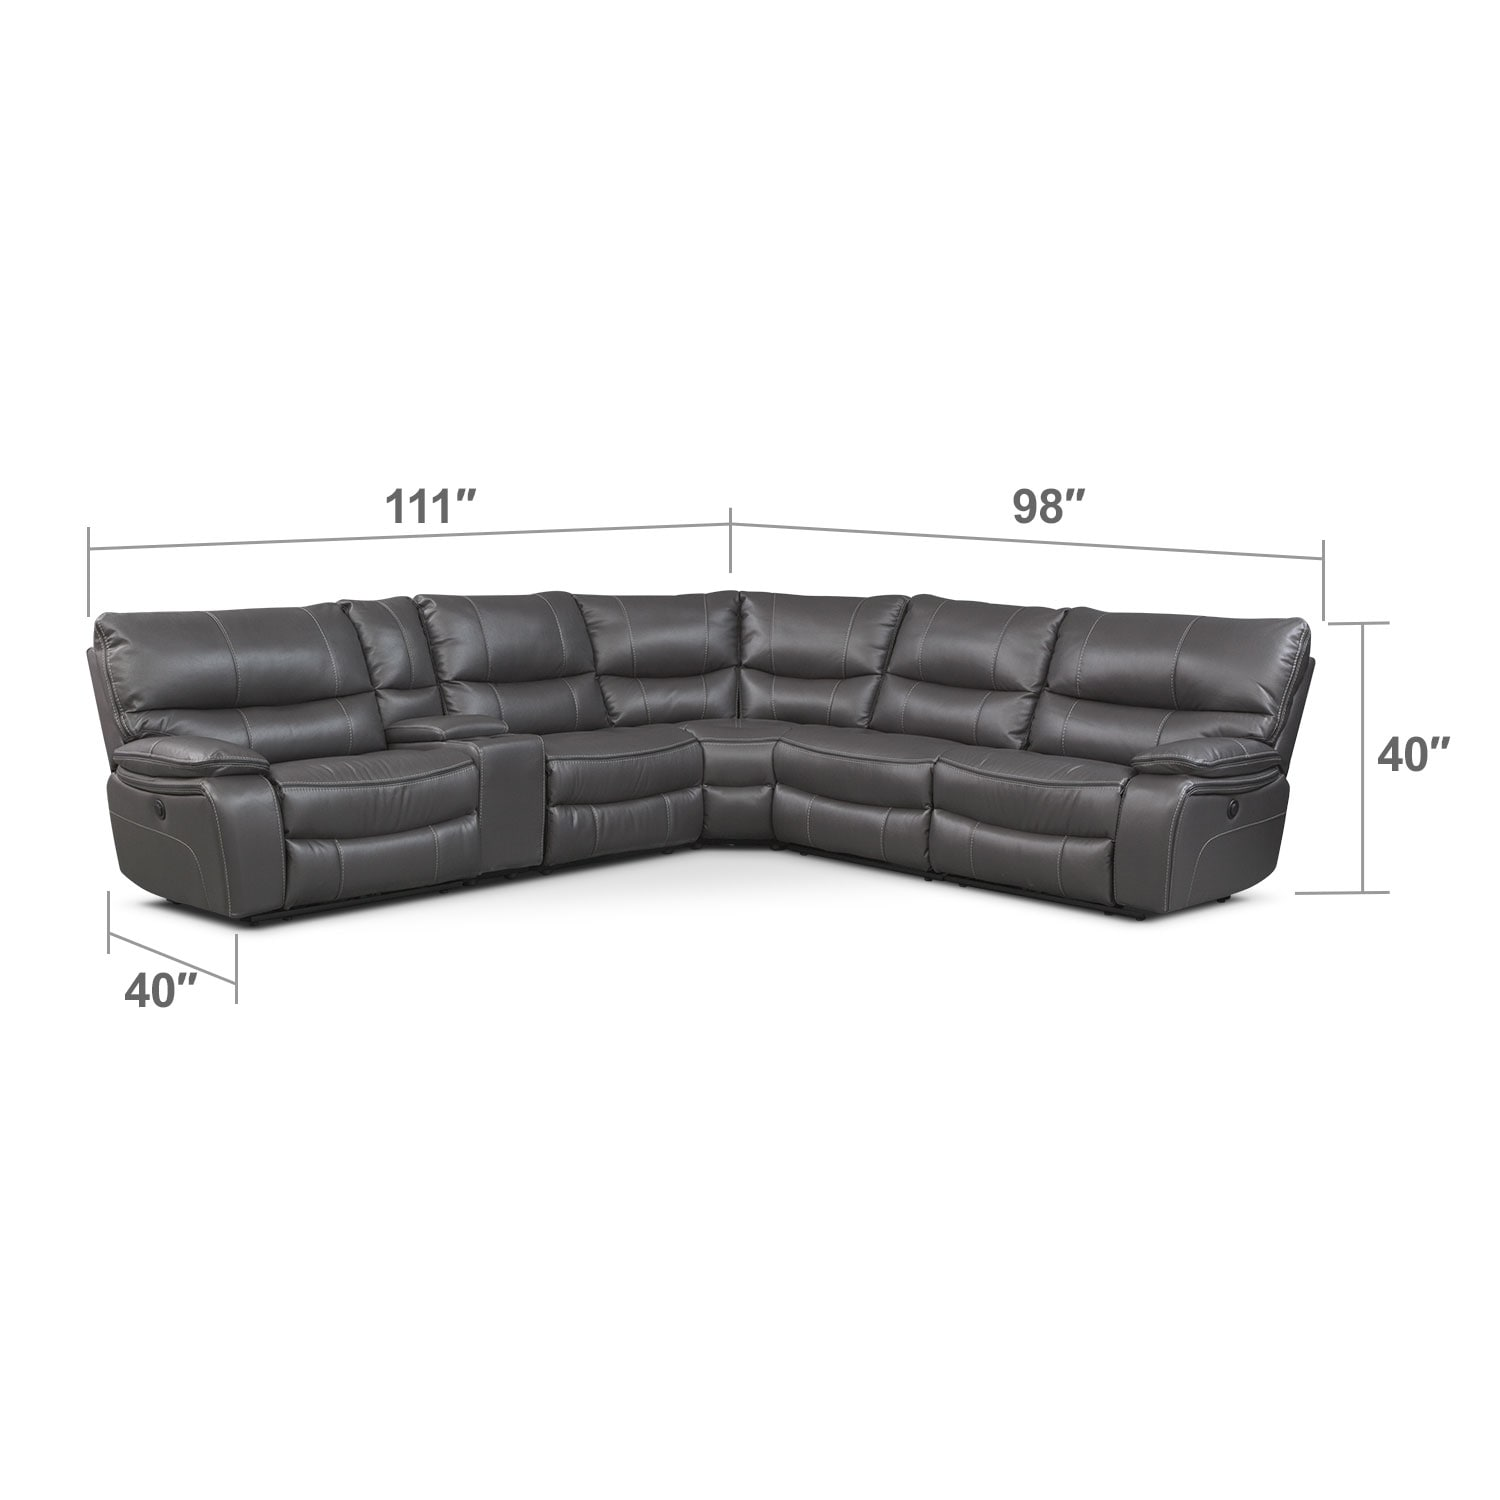 Living Room Furniture - Orlando 6-Piece Power Reclining Sectional with 2 Stationary Chairs - Gray